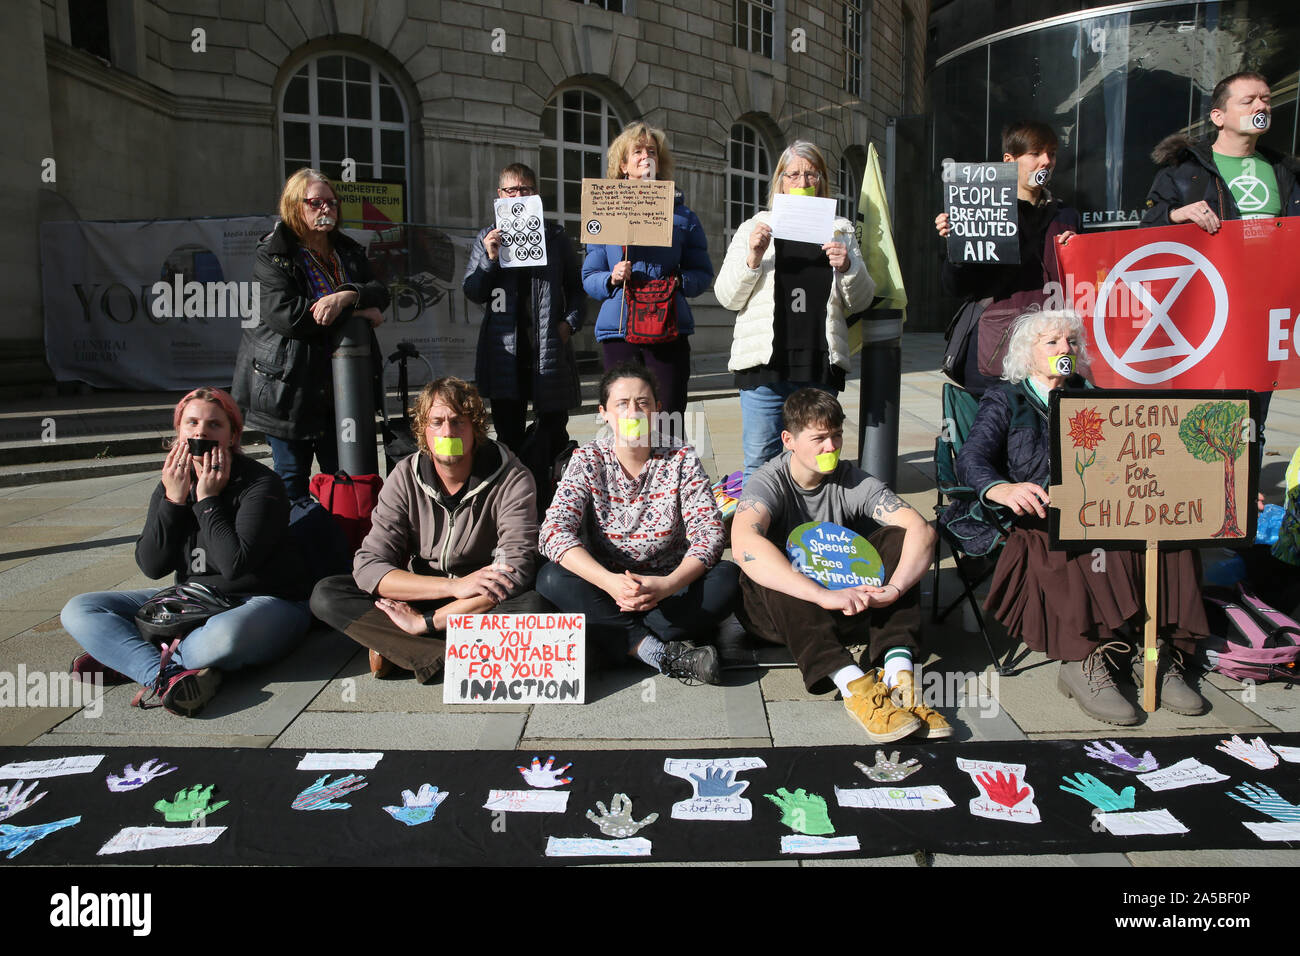 Manchester, UK.19th October, 2019.  A small group of climate protesters are holding a one hour silent protest to raise awareness of what they say is a lack of action taken by Manchester City Council despite declaring a climate emergency earlier in the year. St Peters Square, Manchester, Lancashire, UK. Credit: Barbara Cook/Alamy Live News Stock Photo